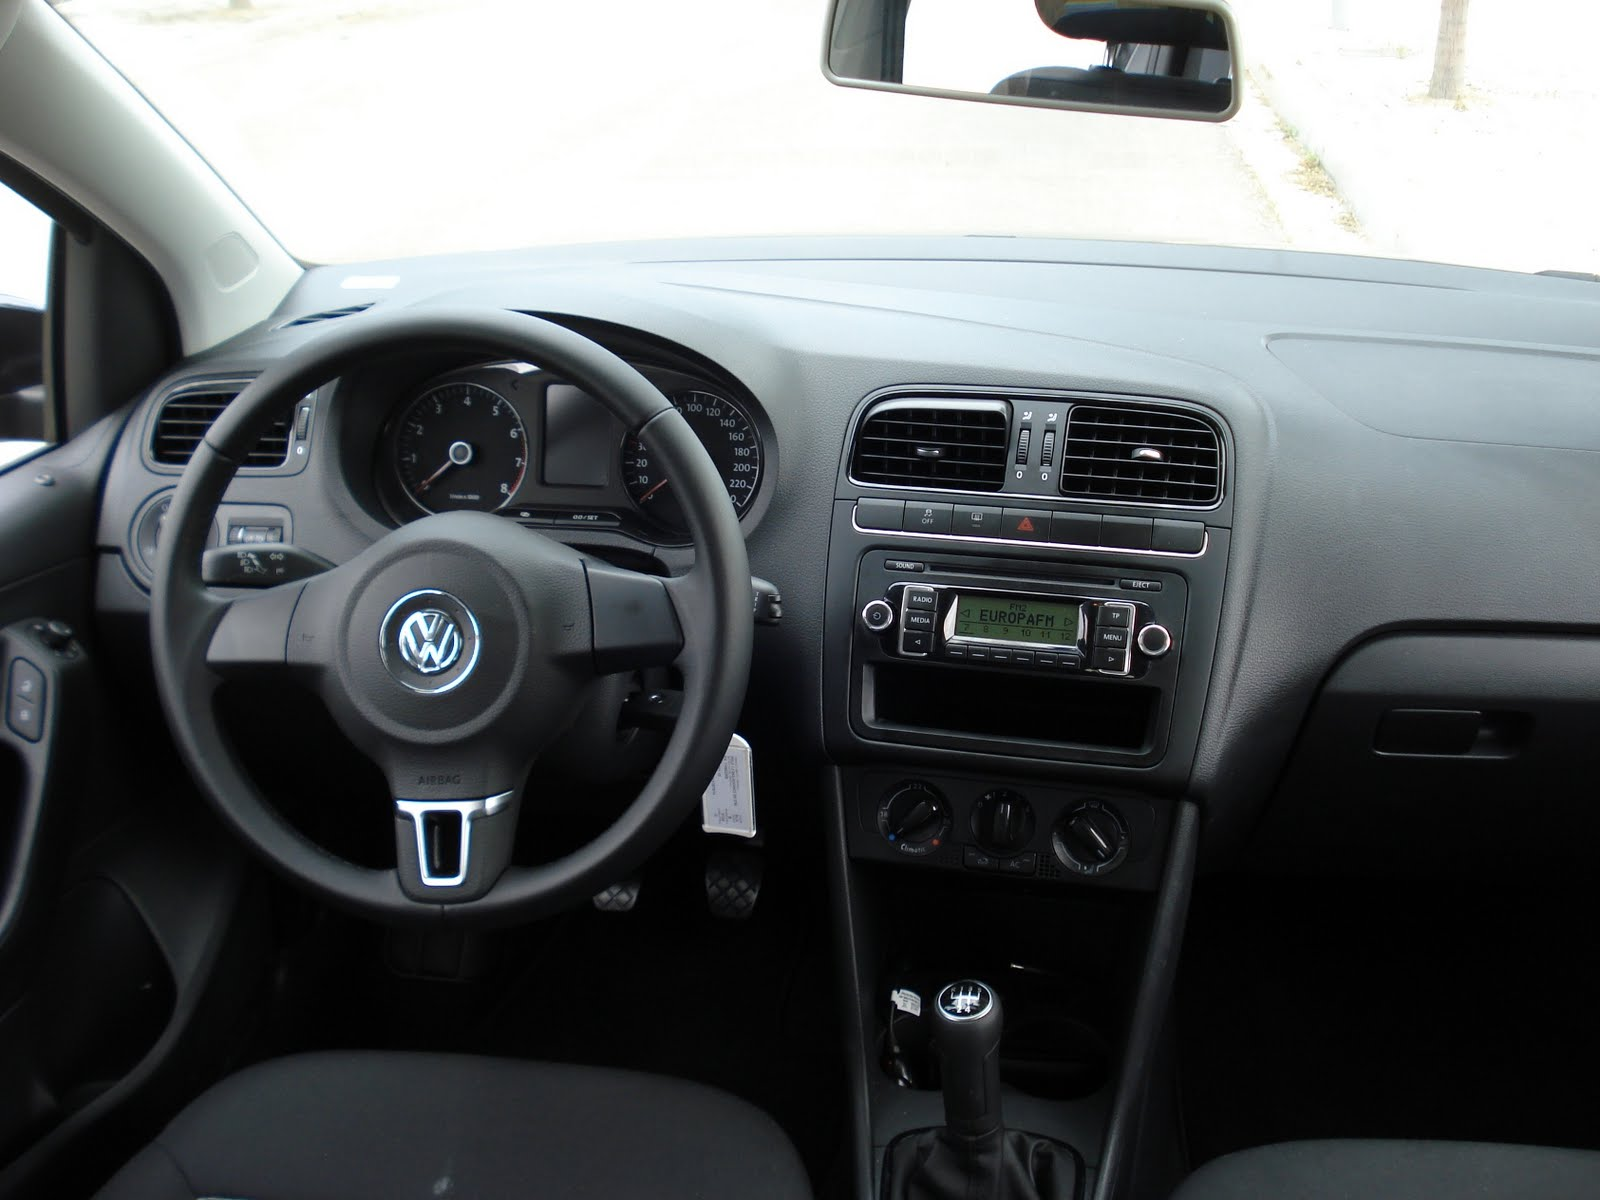 2010 volkswagen polo 1 2 tdi related infomation. Black Bedroom Furniture Sets. Home Design Ideas